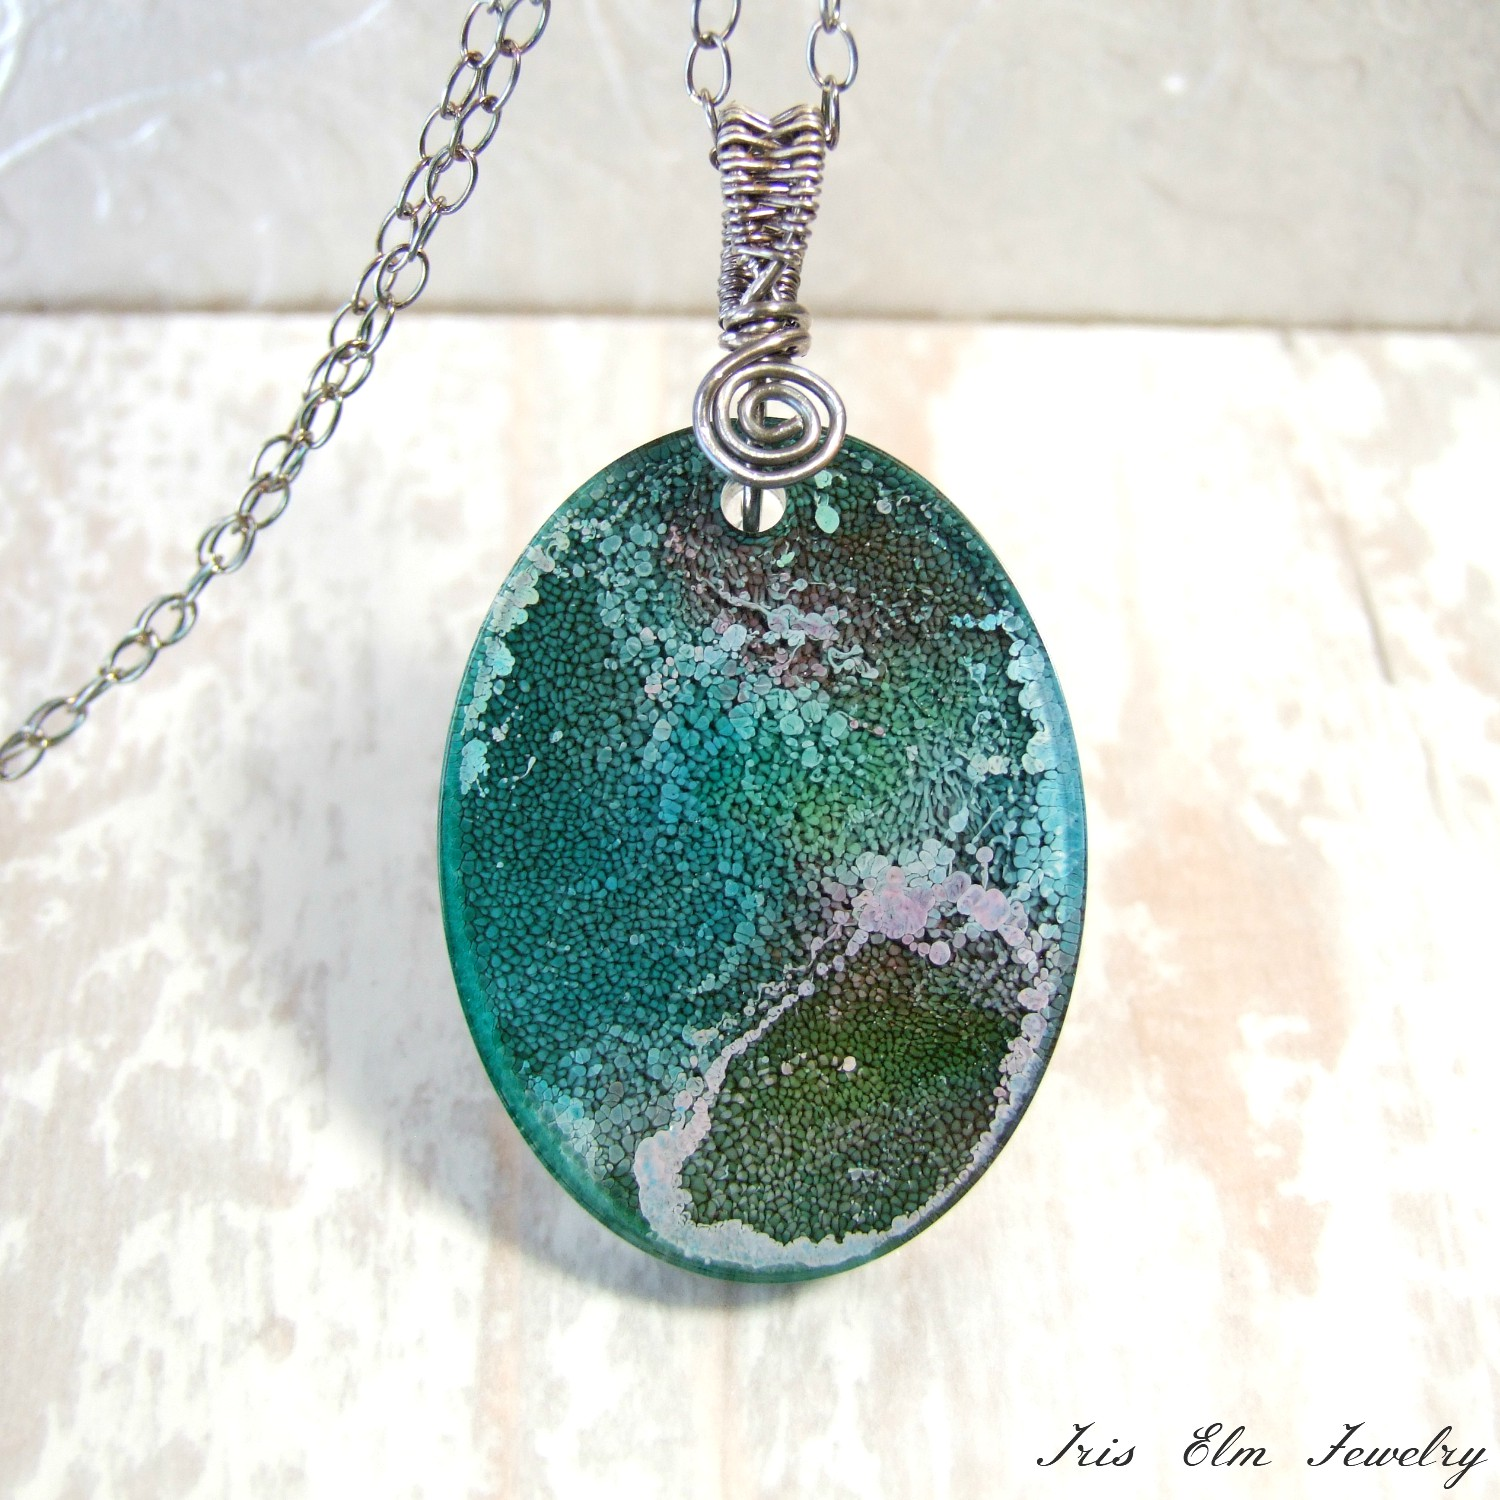 Oval Resin Alcohol Ink Unique Boho Pendant Necklace